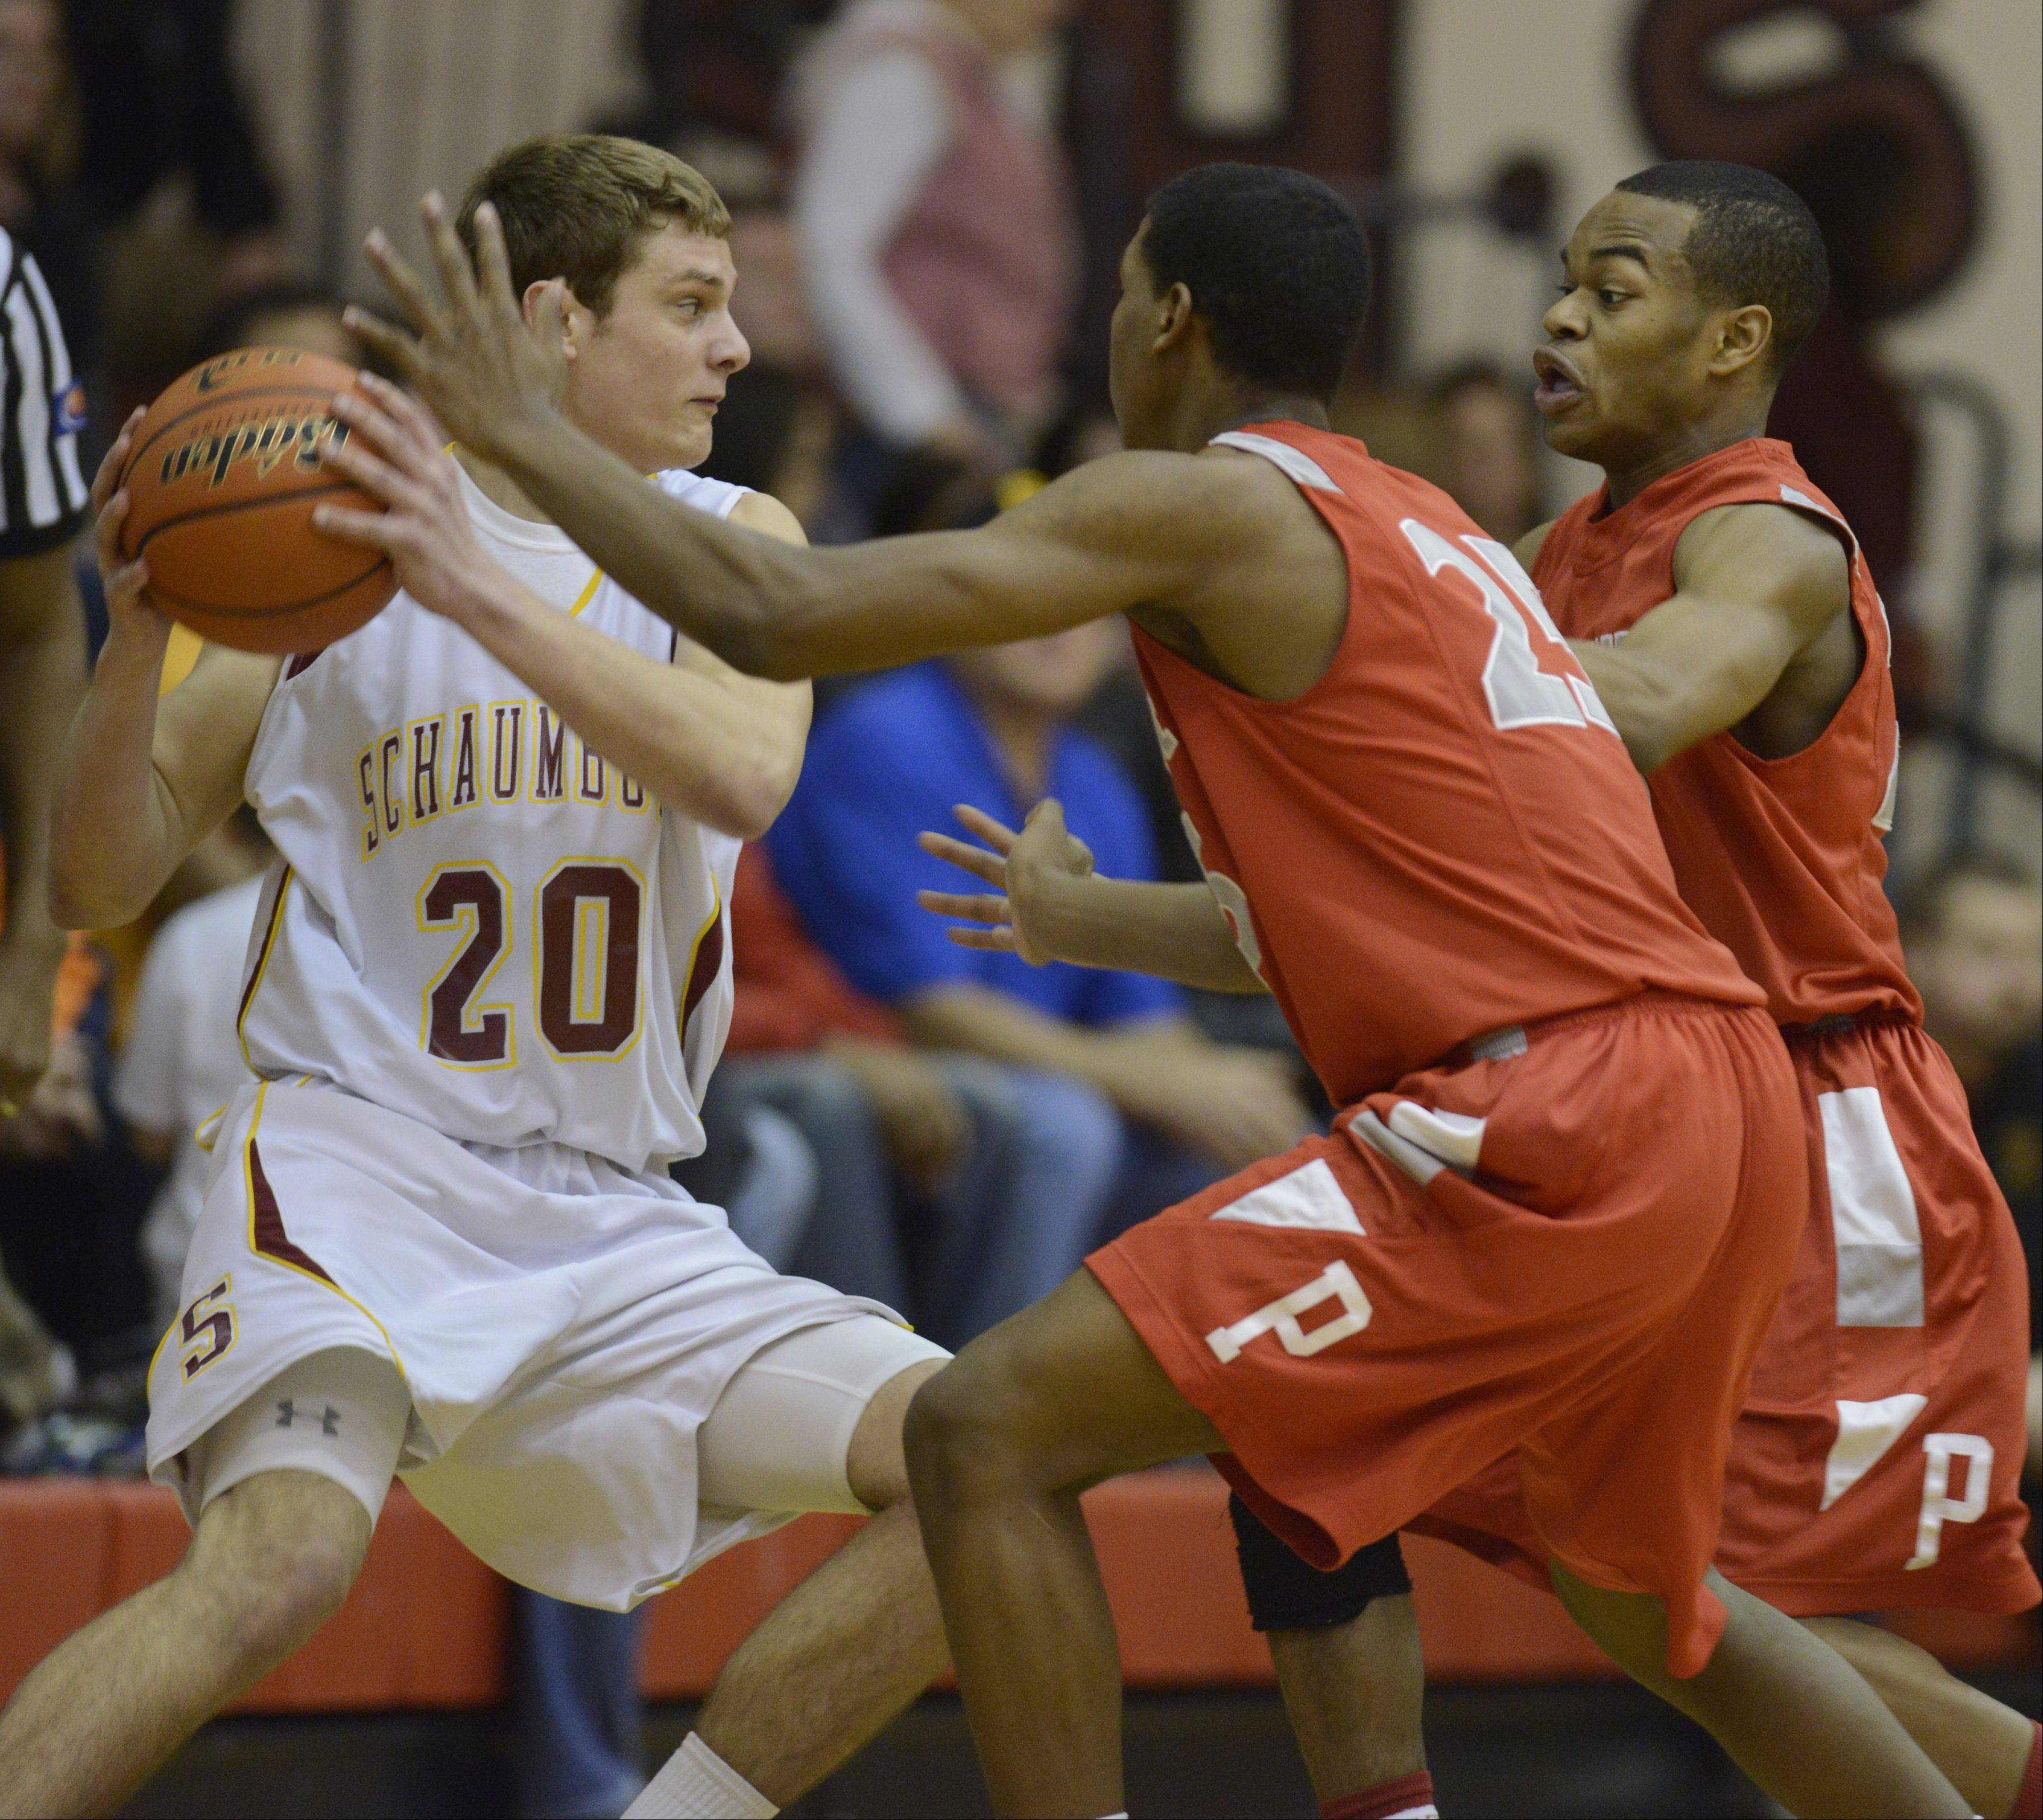 Images from the Palatine vs. Schaumburg boys MSL West championship basketball game on Friday, February 15th, in Schaumburg.